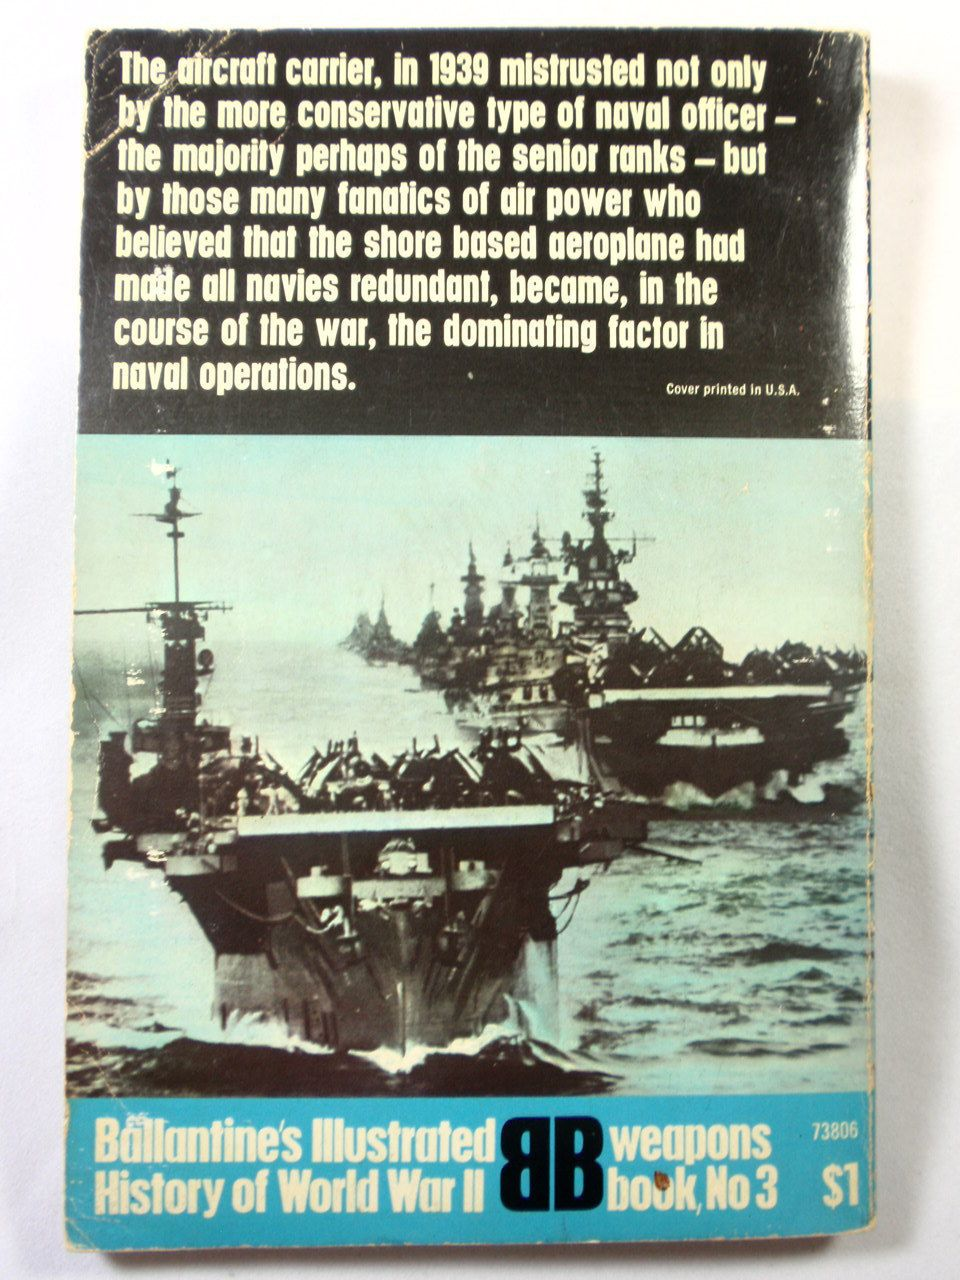 Aircraft Carrier The Majestic Weapon Ballantine Illustrated History Of World  War Ii  Weapons Book #